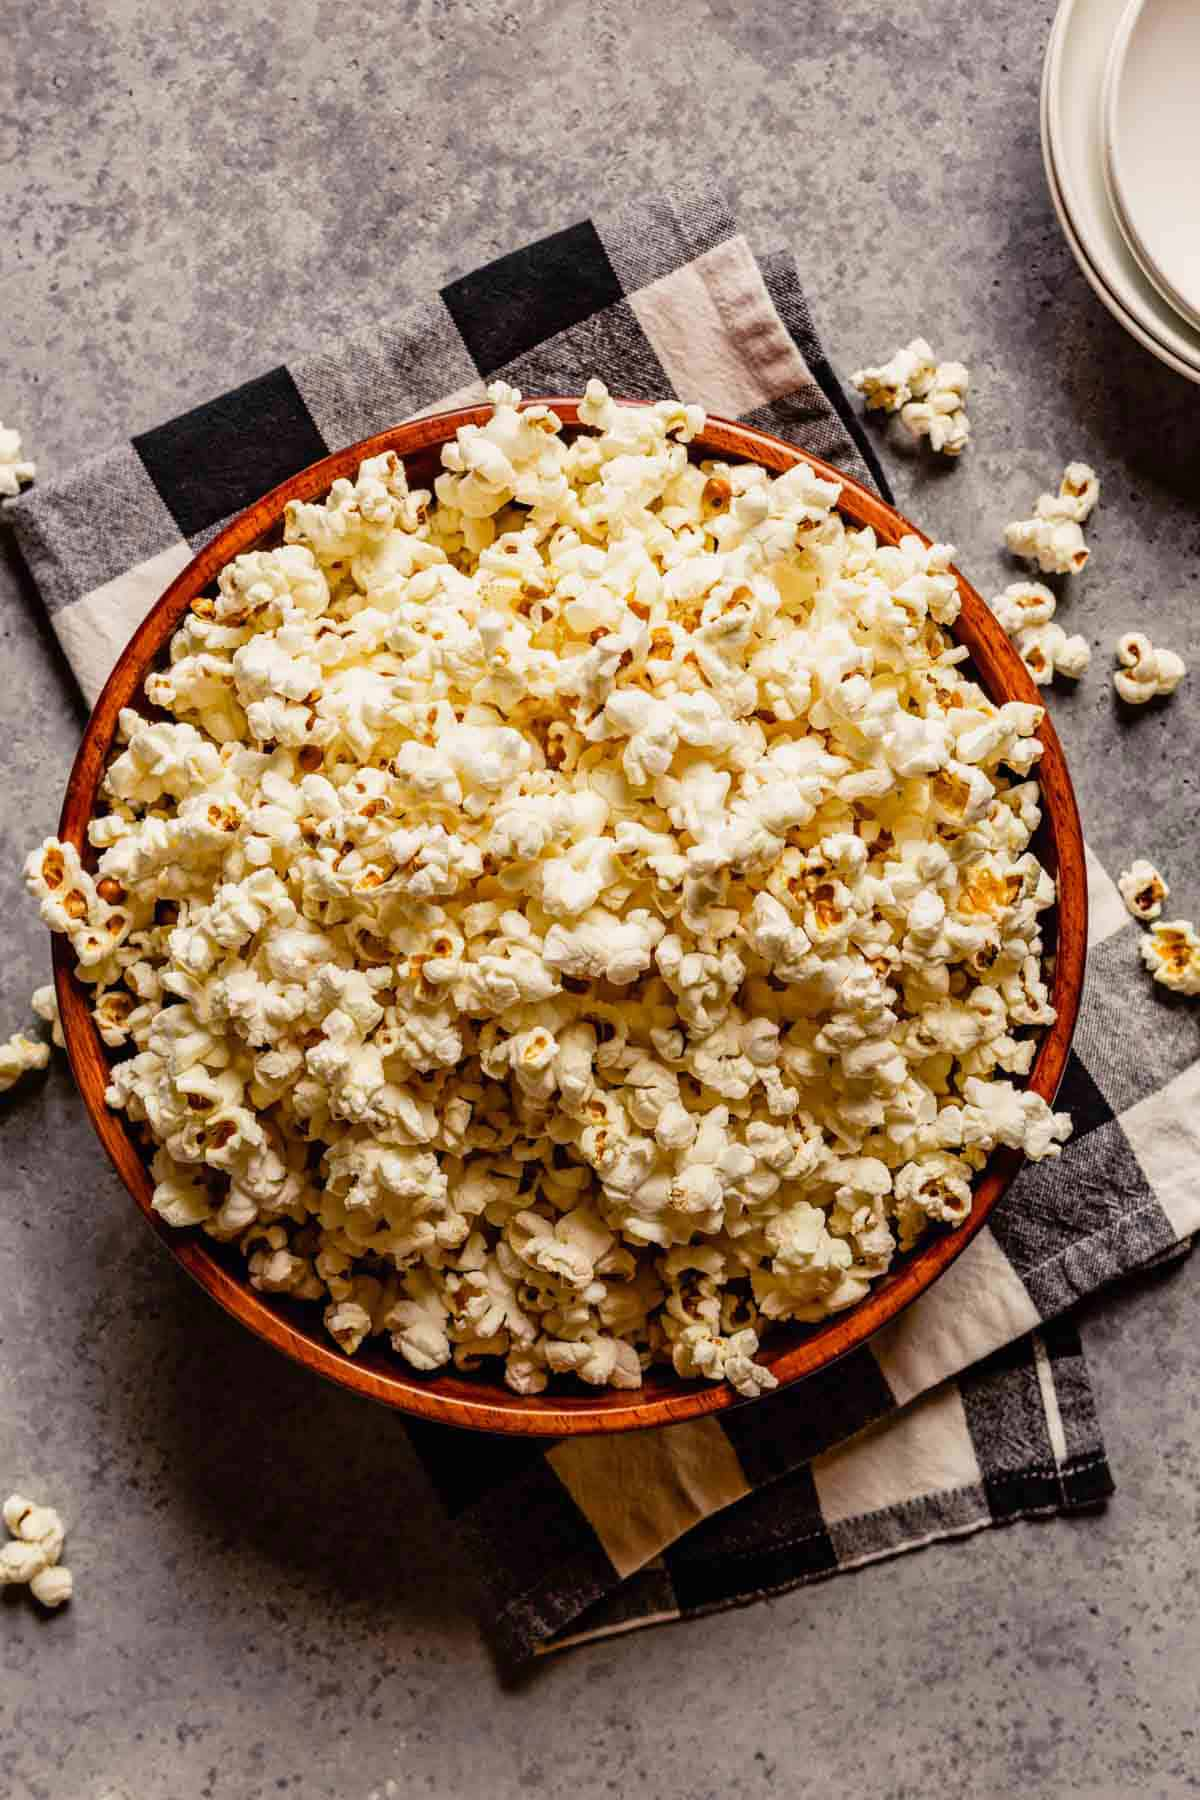 Overhead photo of popcorn in a bowl.